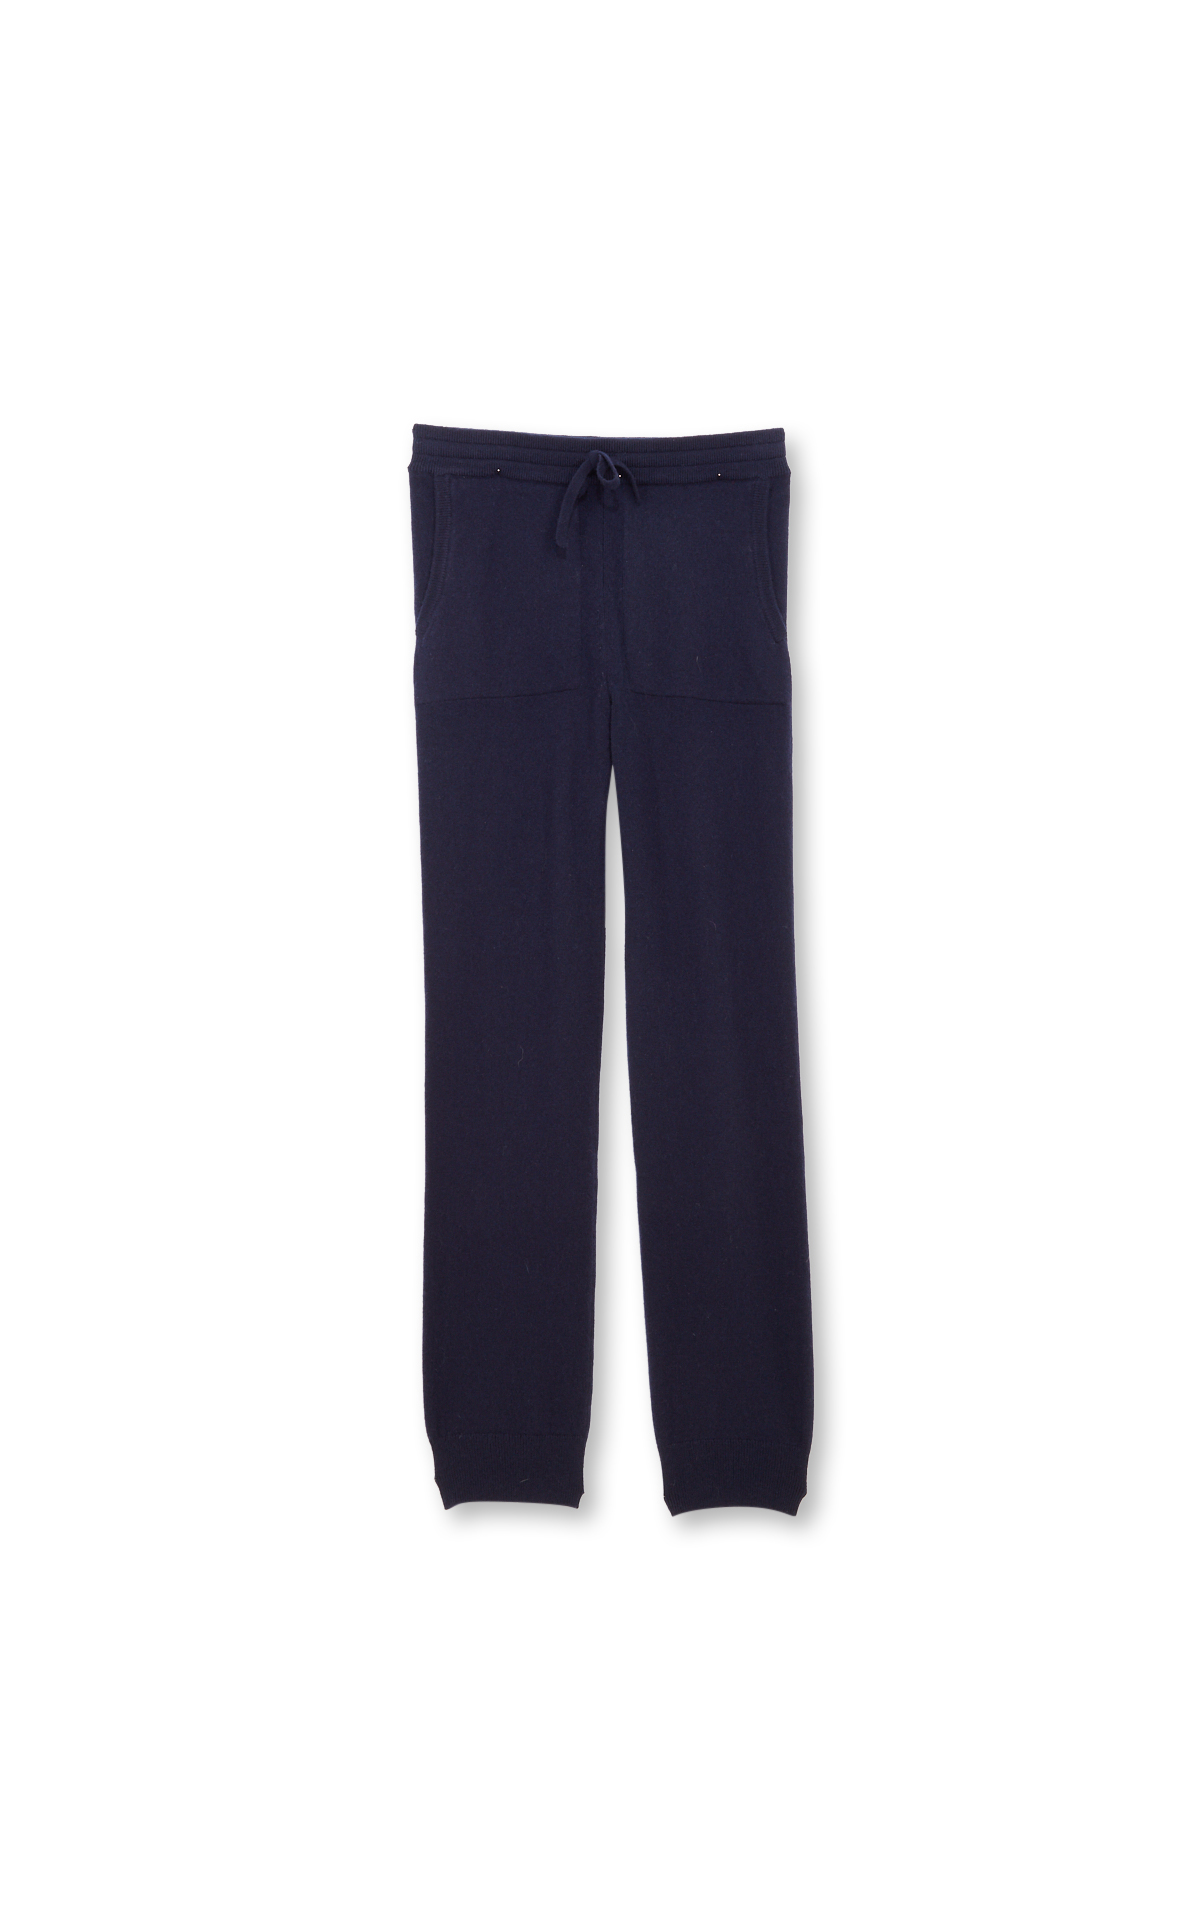 Eric Bompard Navy blue cashmere trousers